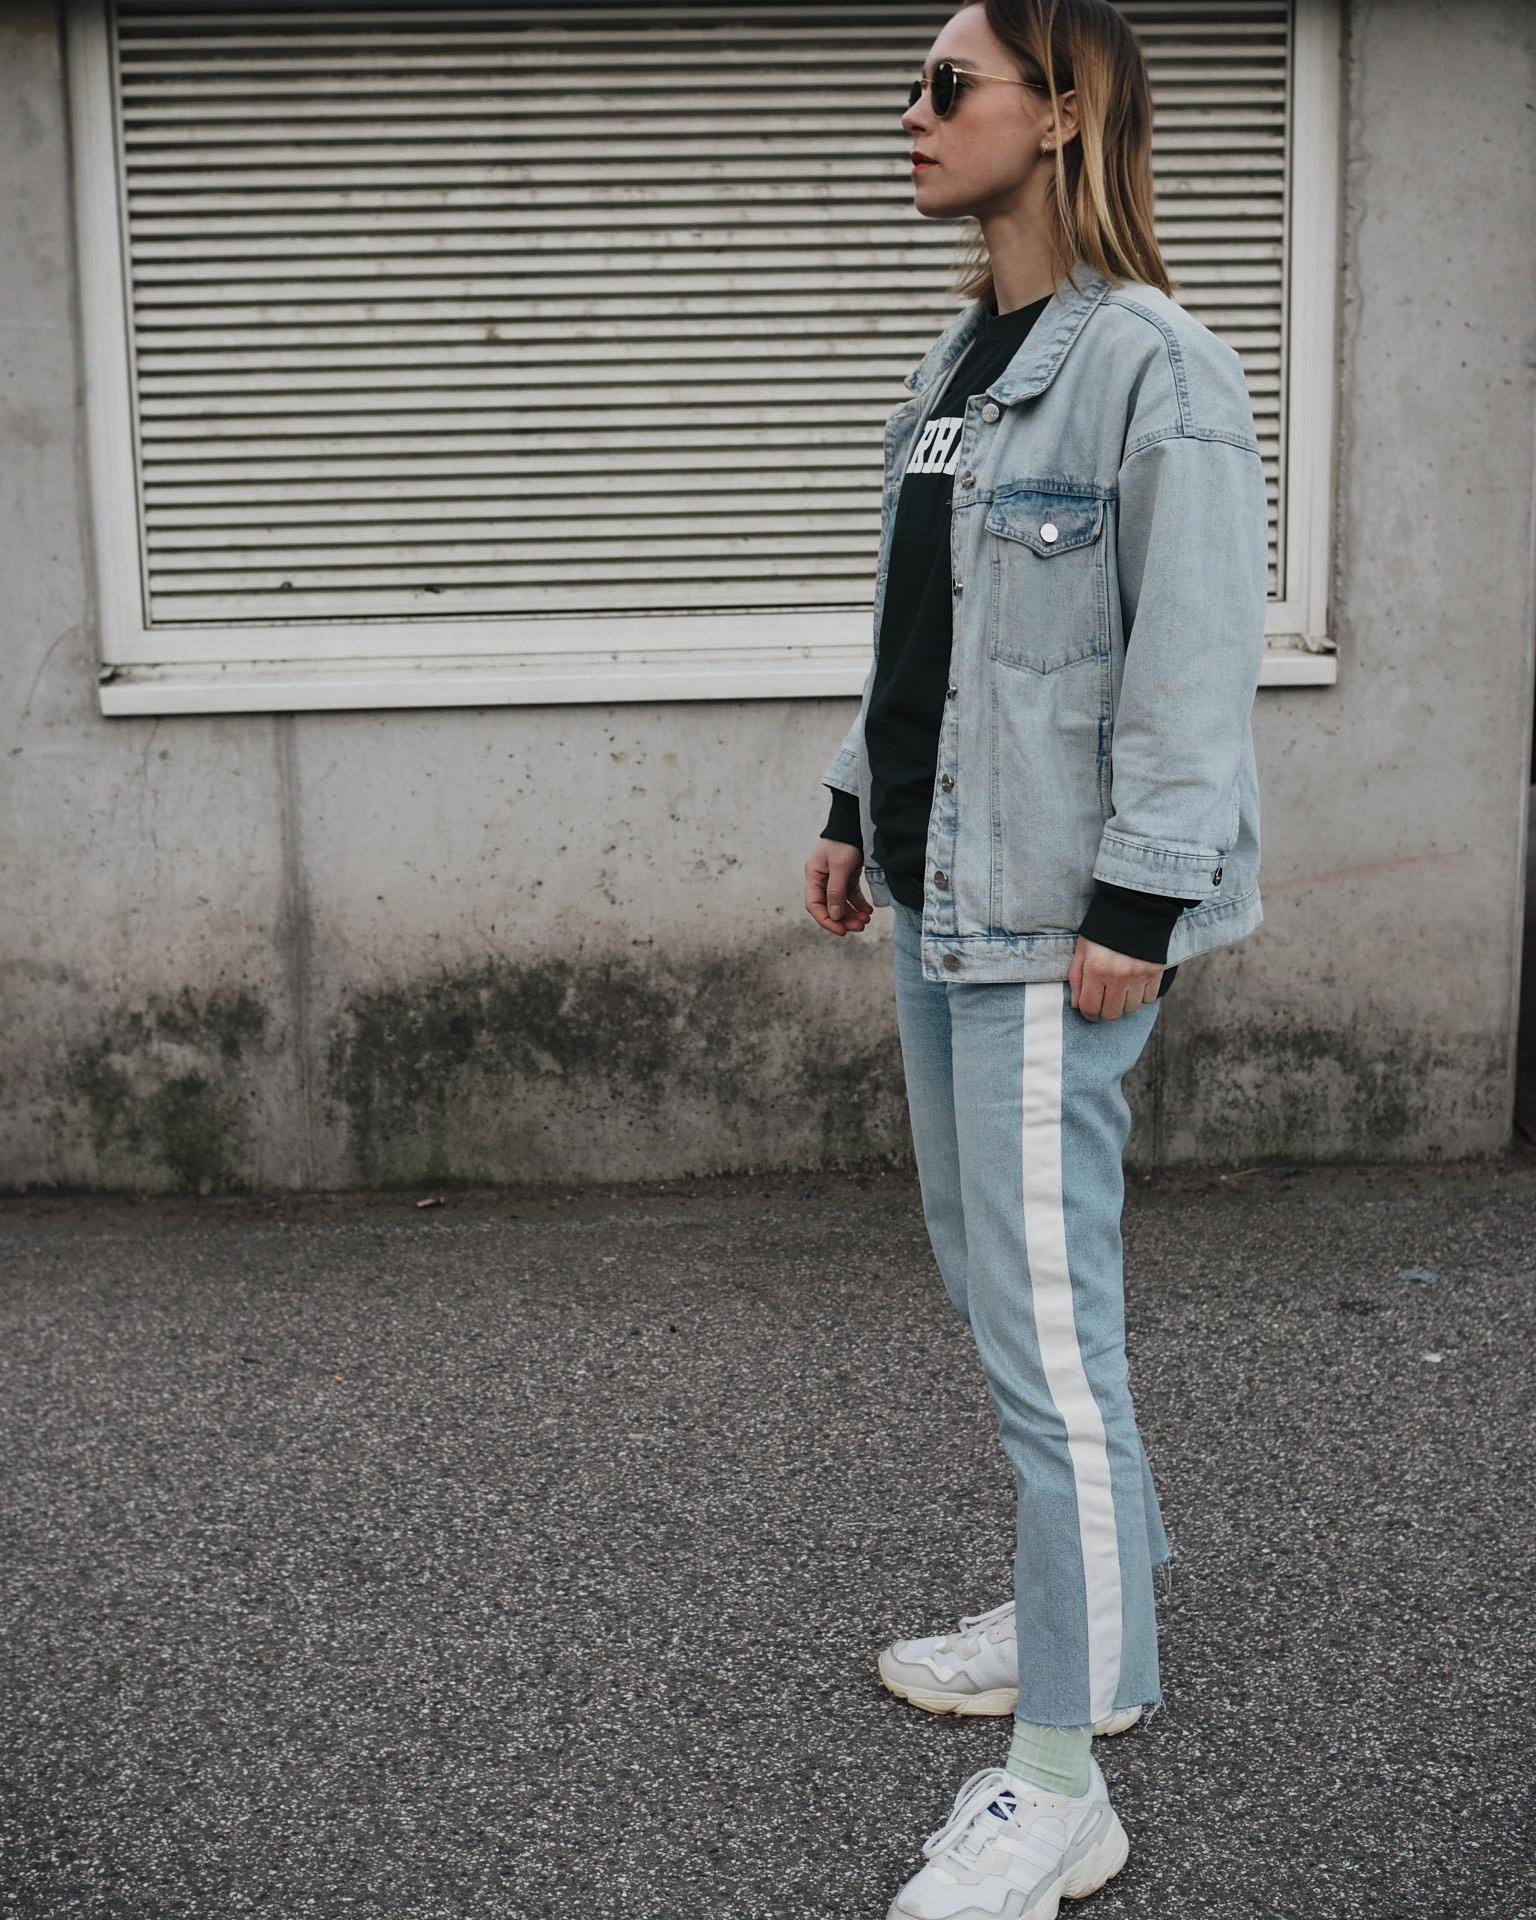 Denim Look 💙 #fashion #denim #jeans #fashioncrush